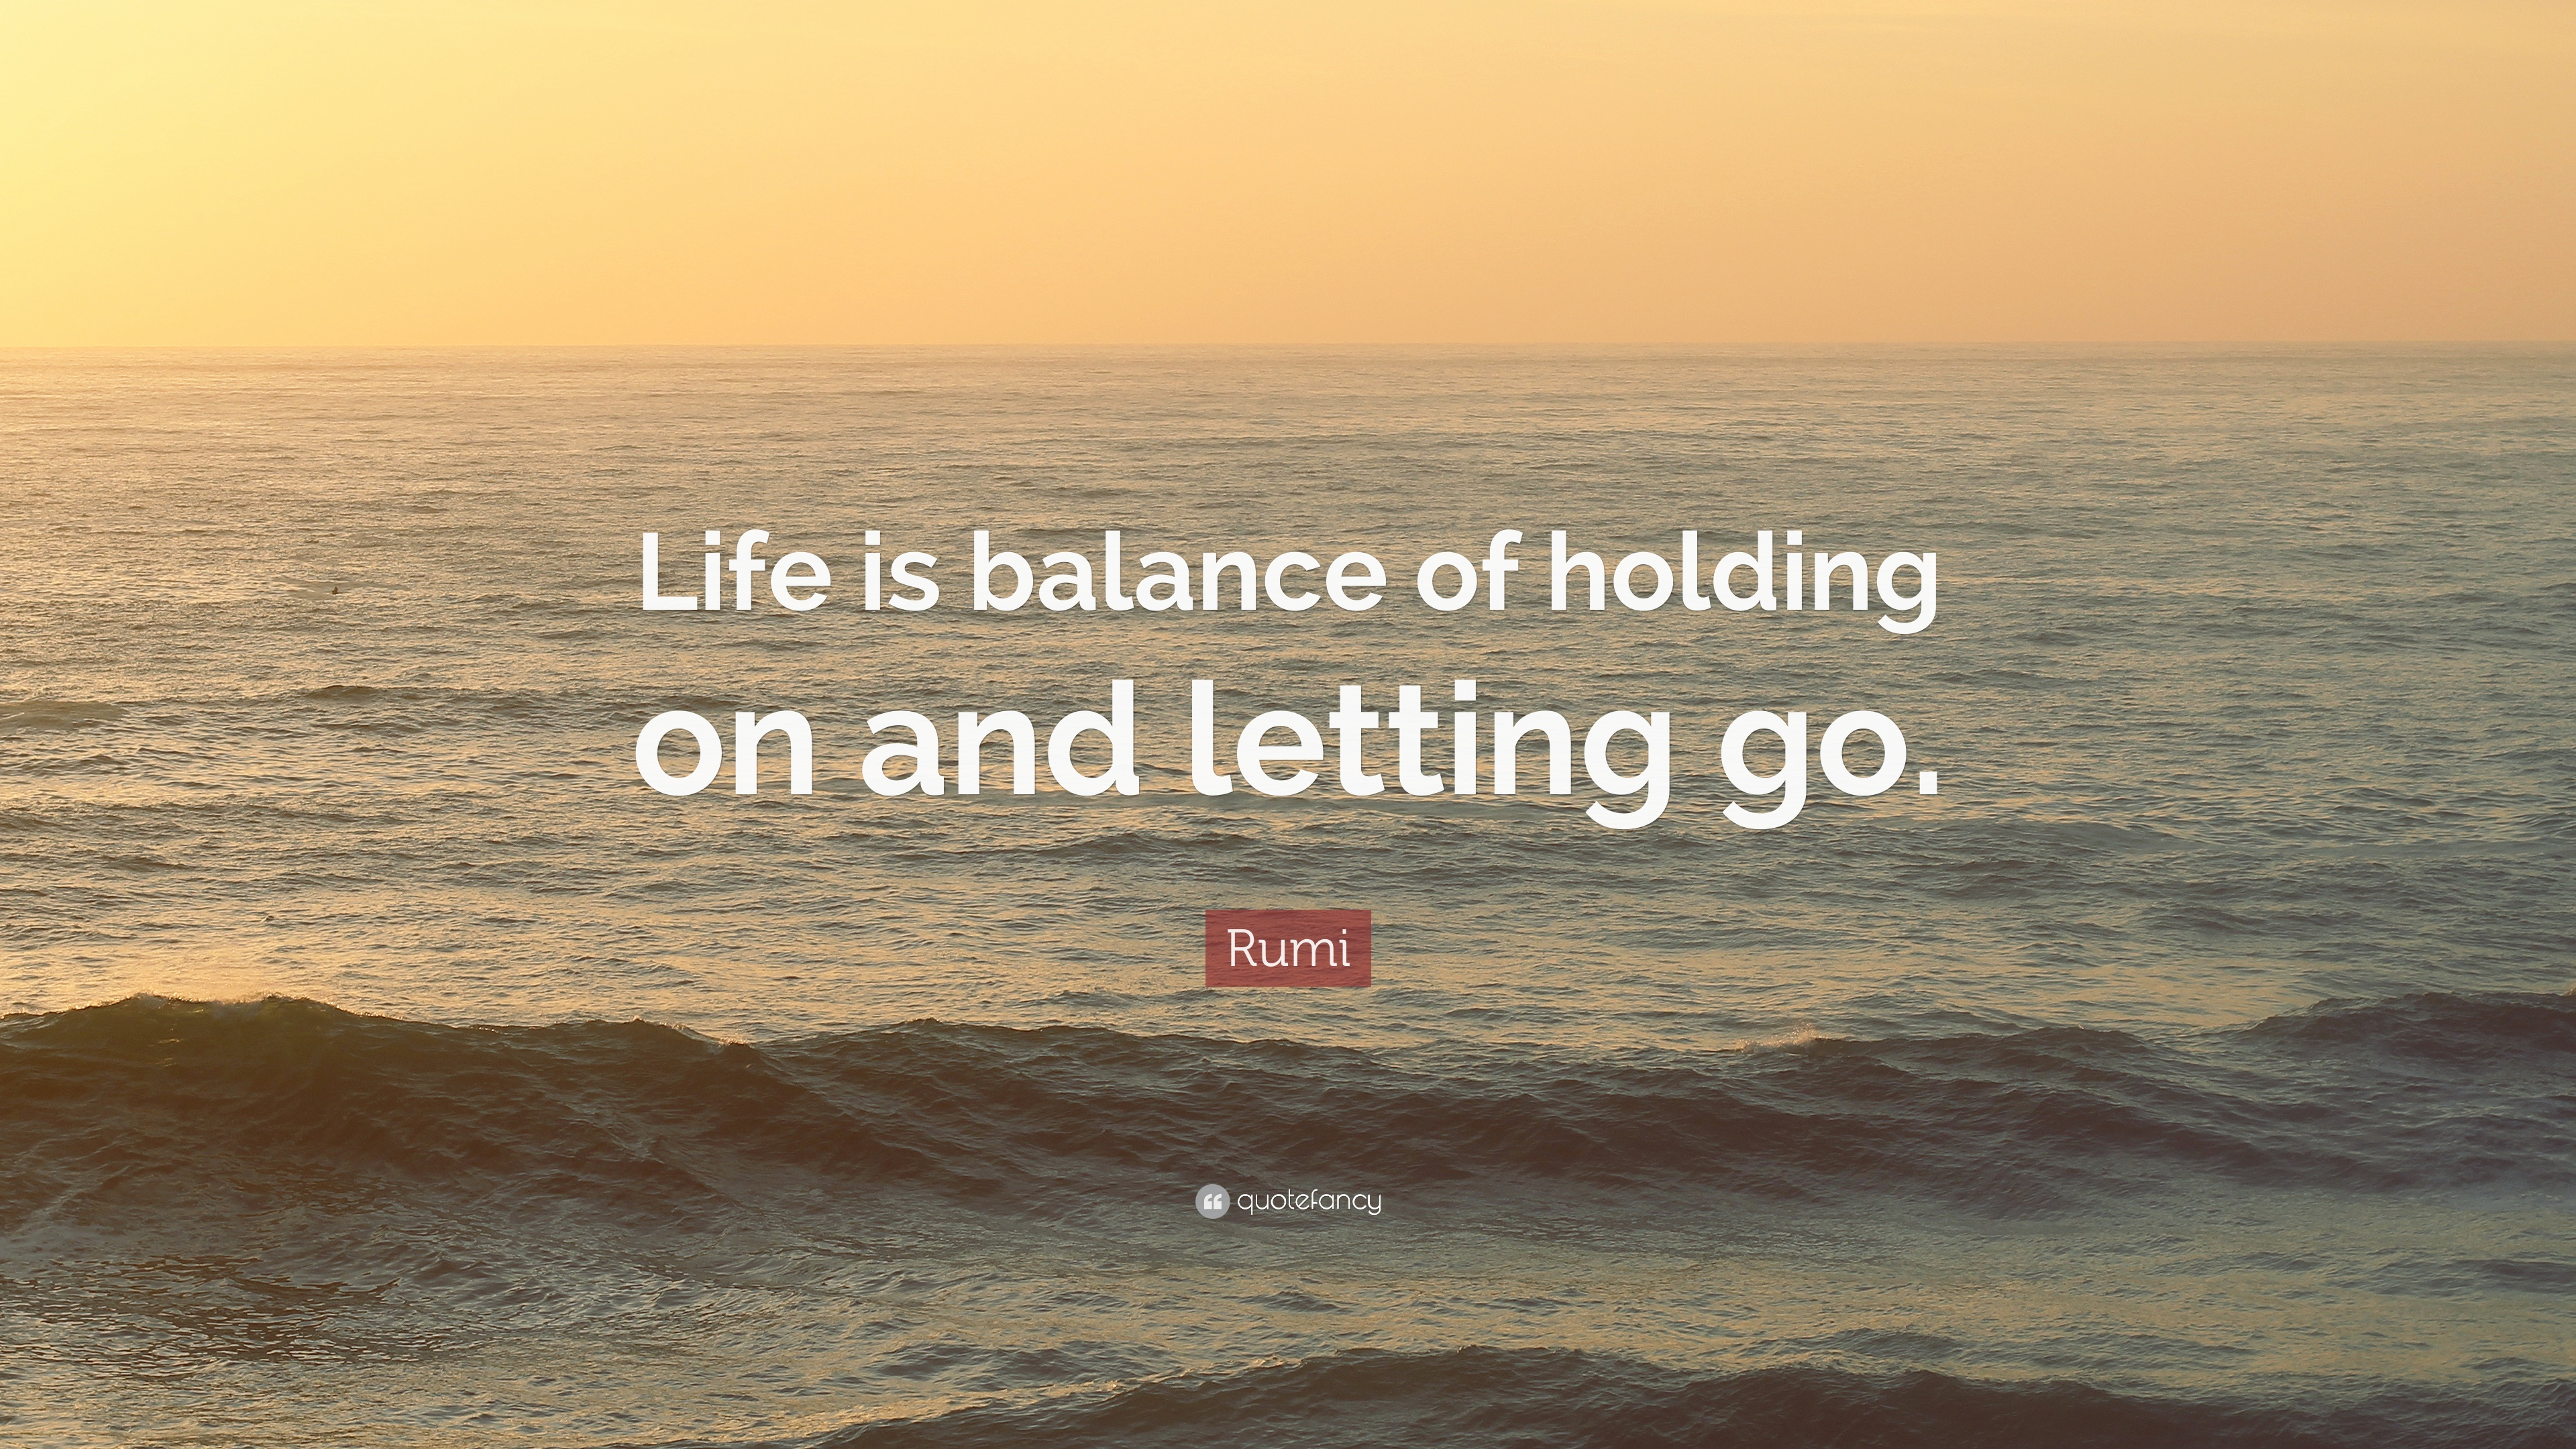 Rumi Quotes On Life Life Is Balance Quote With Rumi  Inspiring Quotes And Words In Life